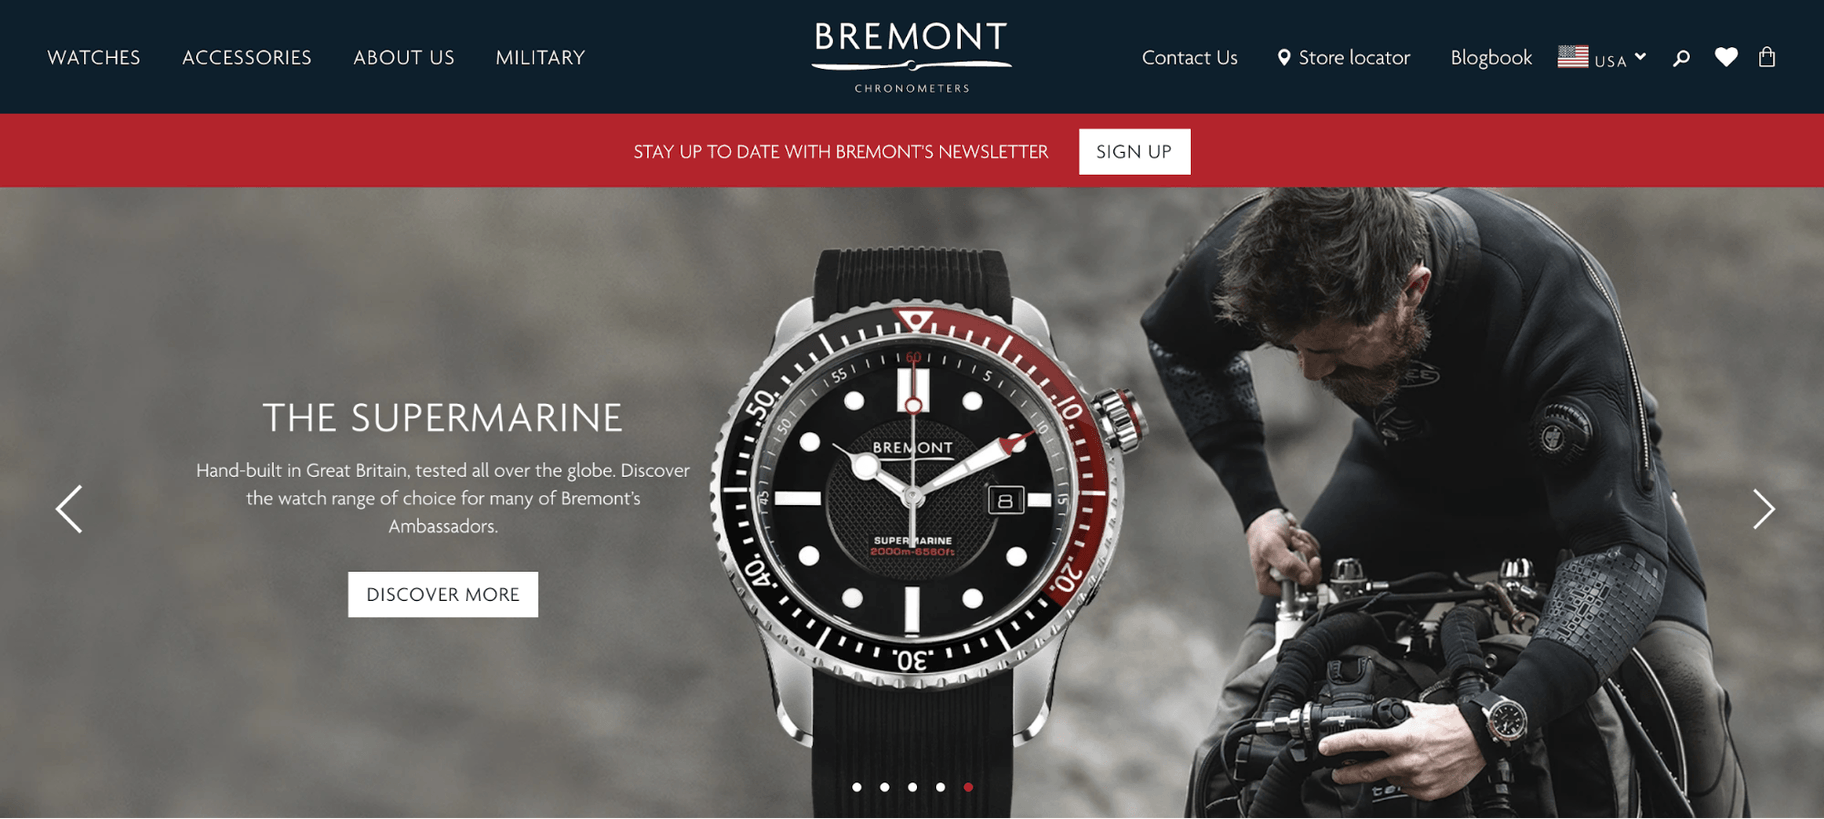 Bremont Website